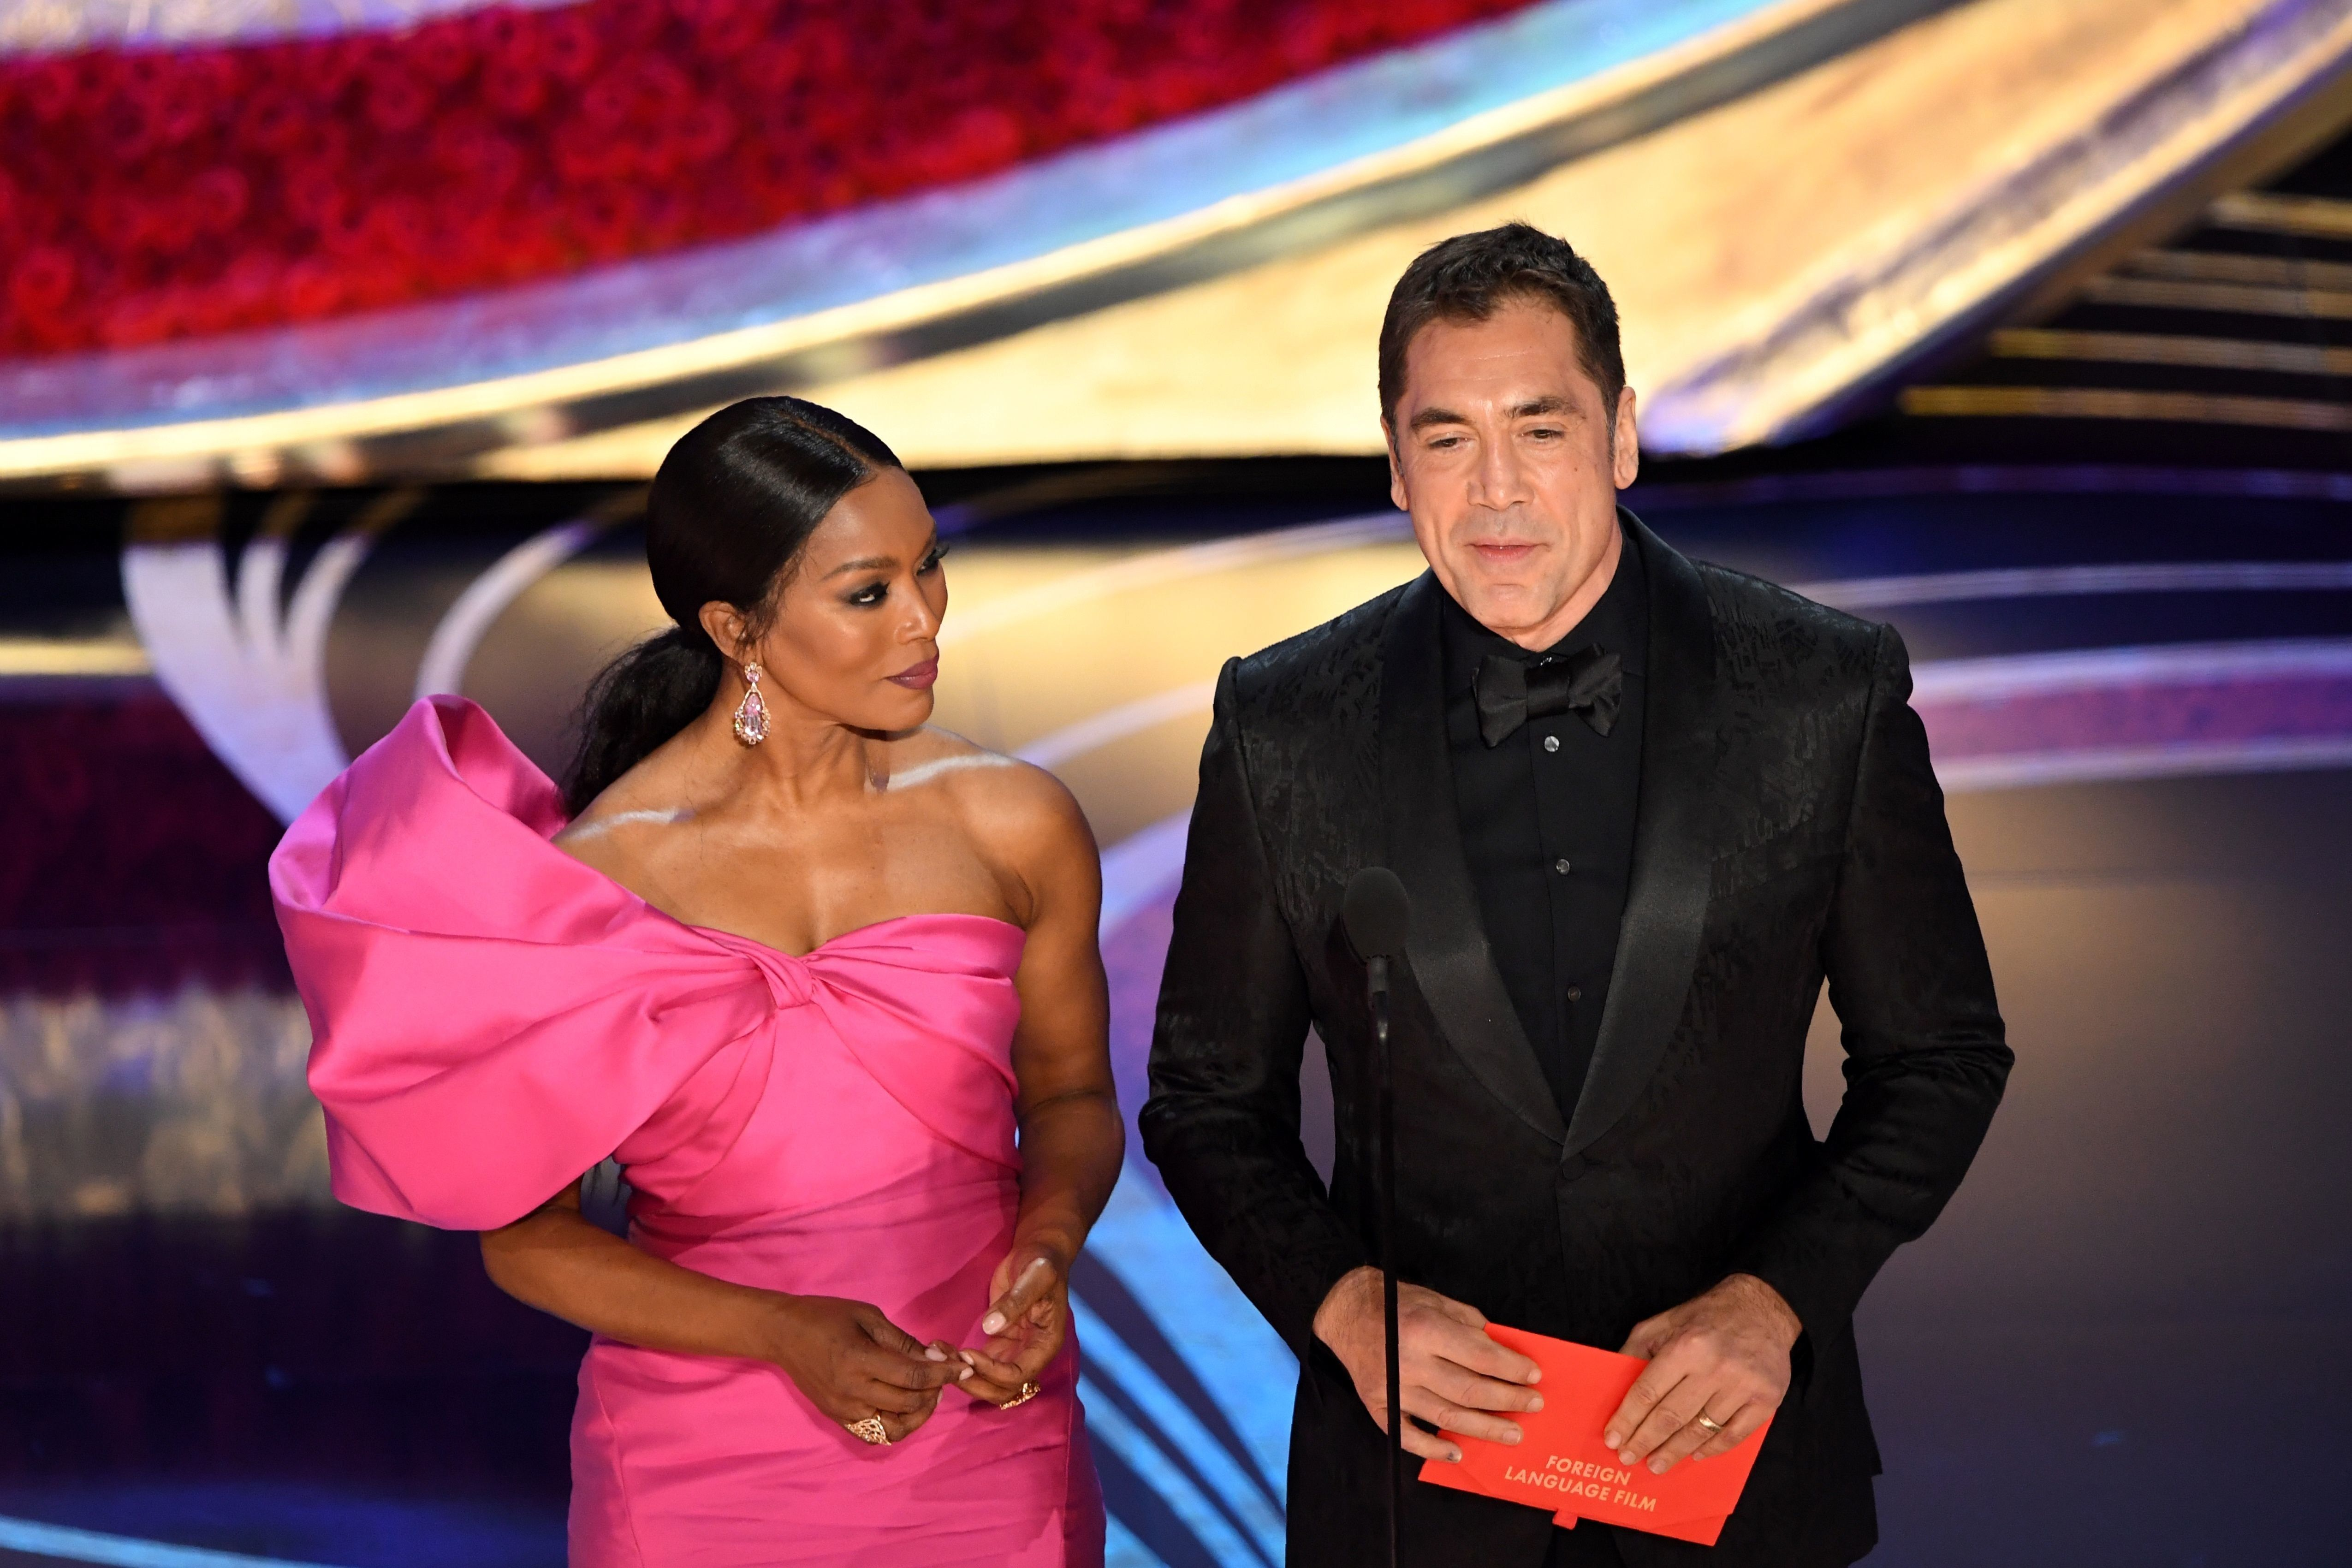 US actress Angela Bassett and Spanish Actor Javier Bardem present an award during the 91st Annual Academy Awards at the Dolby Theatre in Hollywood, California on February 24, 2019. (Photo by VALERIE MACON / AFP)        (Photo credit should read VALERIE MACON/AFP/Getty Images)